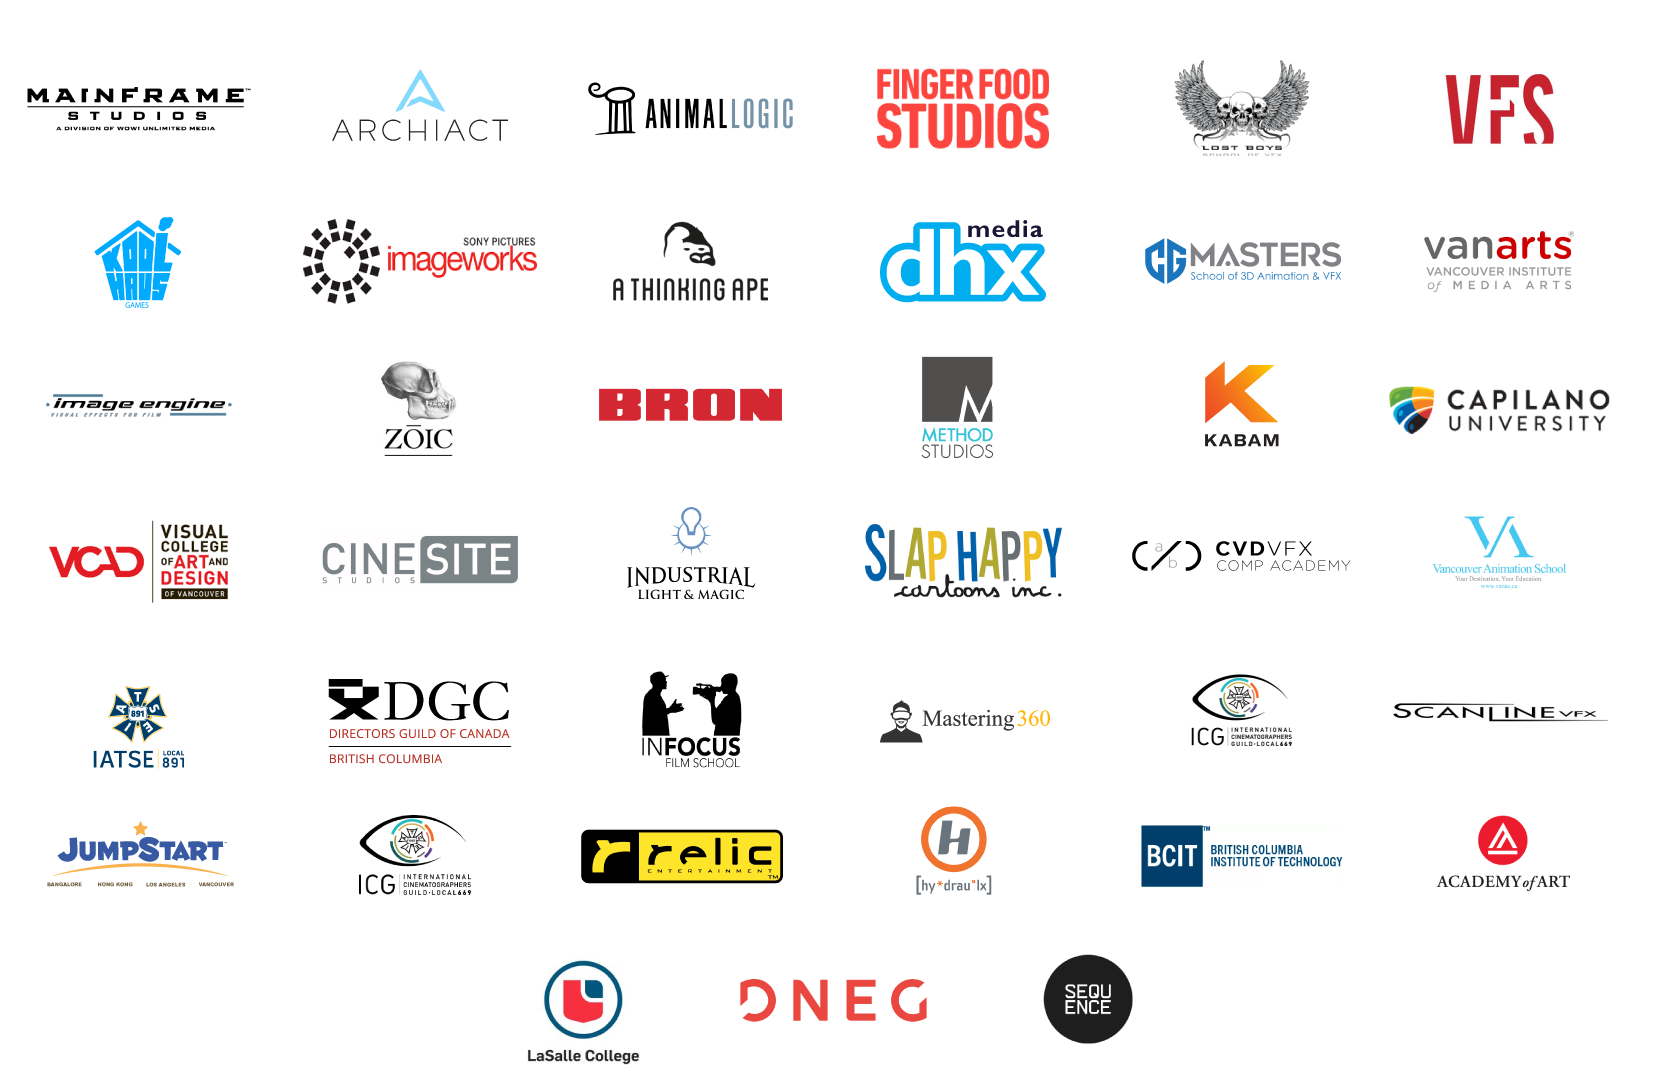 Vancouver Digital Entertainment Career Fair 2019 Exhibitors